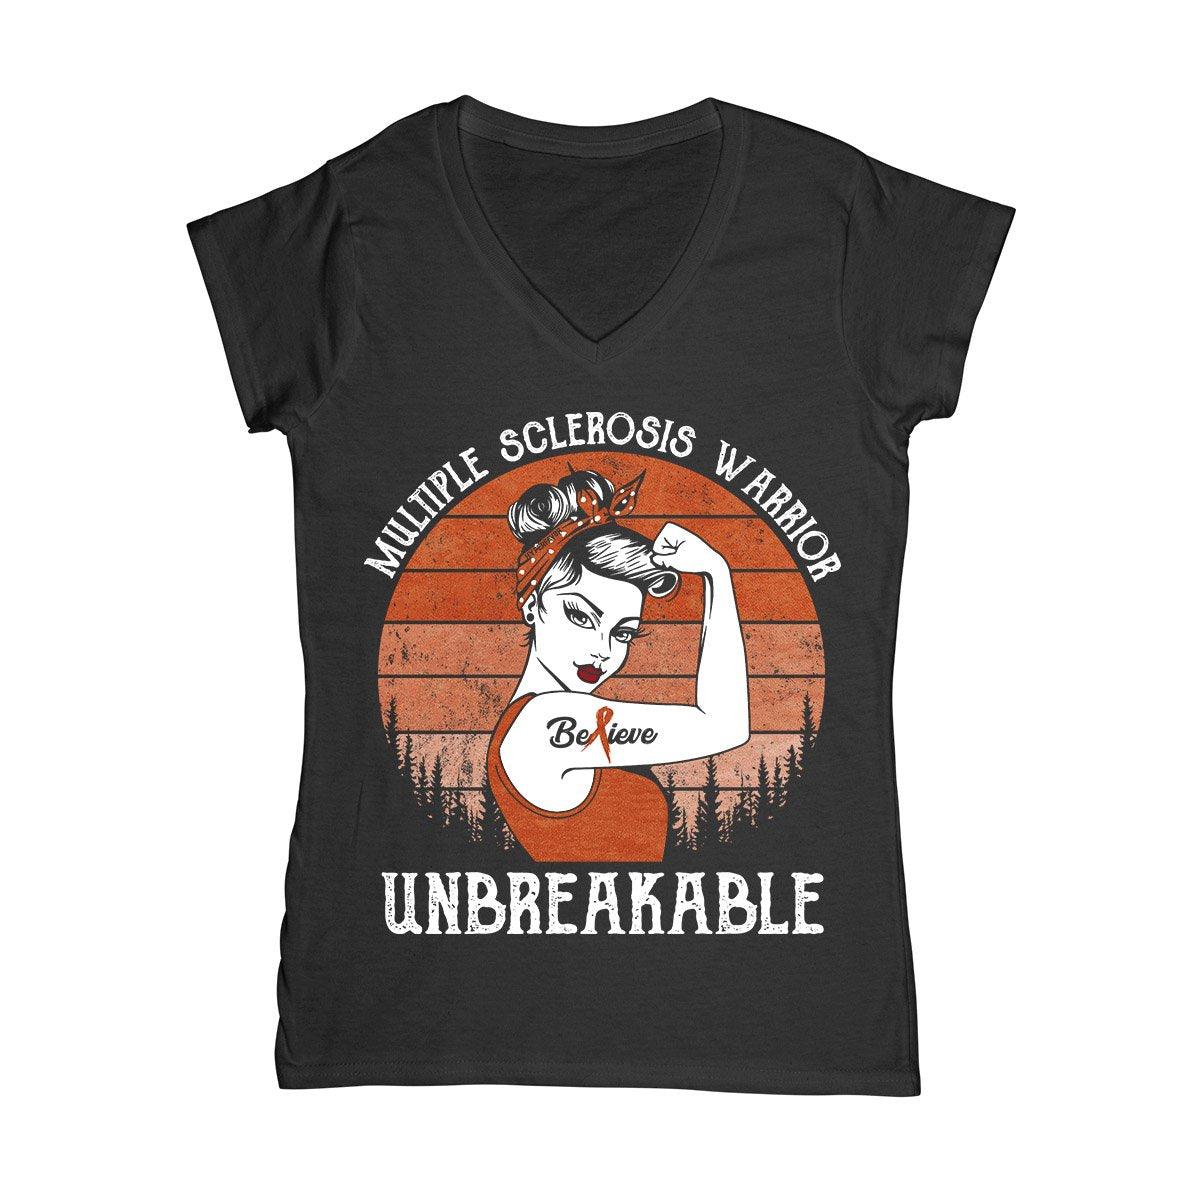 Unbreakable MS Warrior Women V-neck T-shirt, MS Awareness Shirt, Multiple Sclerosis Awareness Gifts